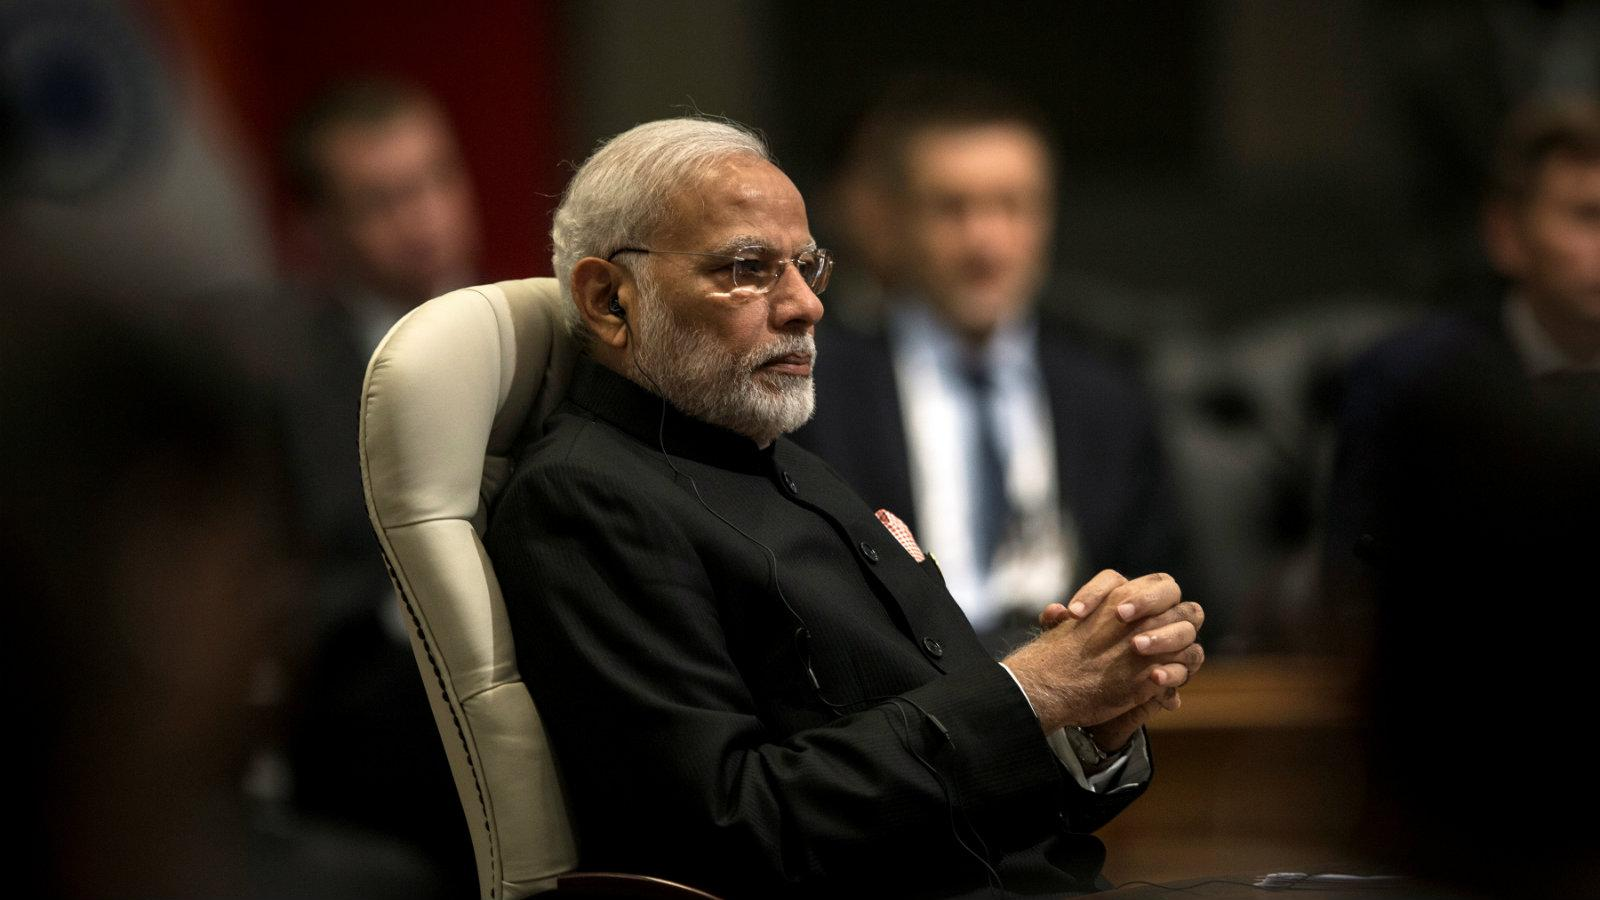 Prime Minister of India Narendra Modi, who has served since 2014 and is running for reelection next year ( Image )